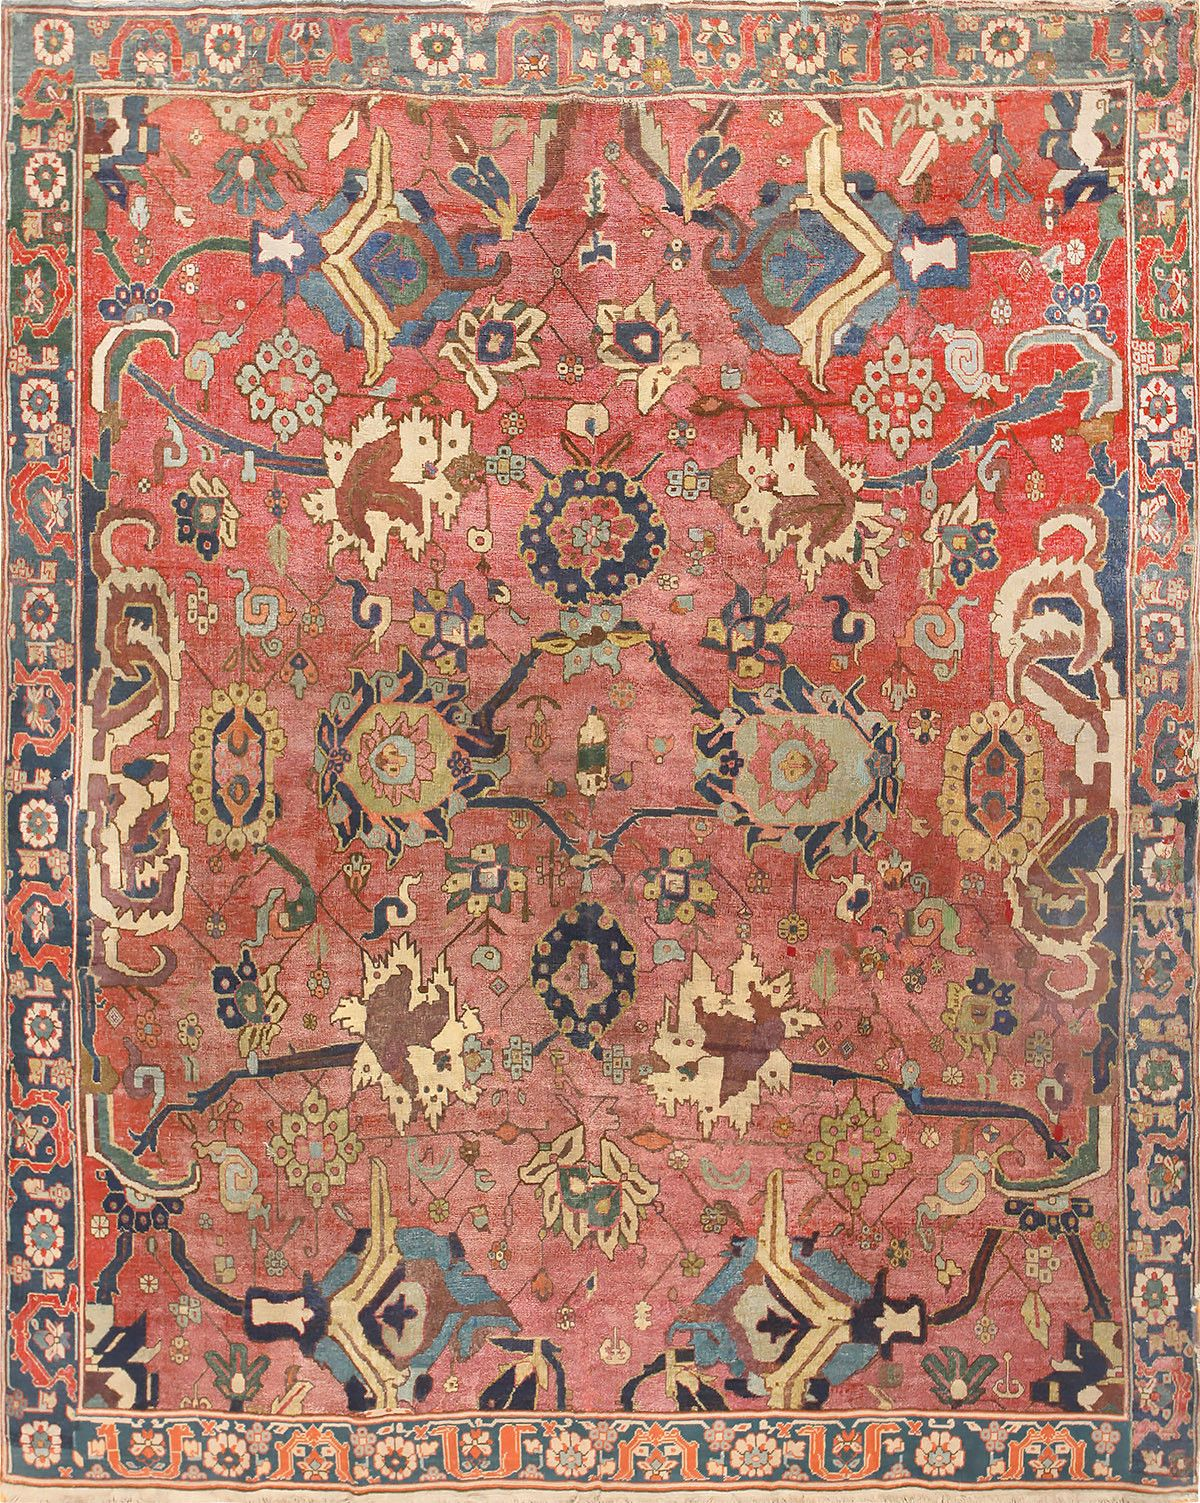 This is an example of a persian rug which were common and still are